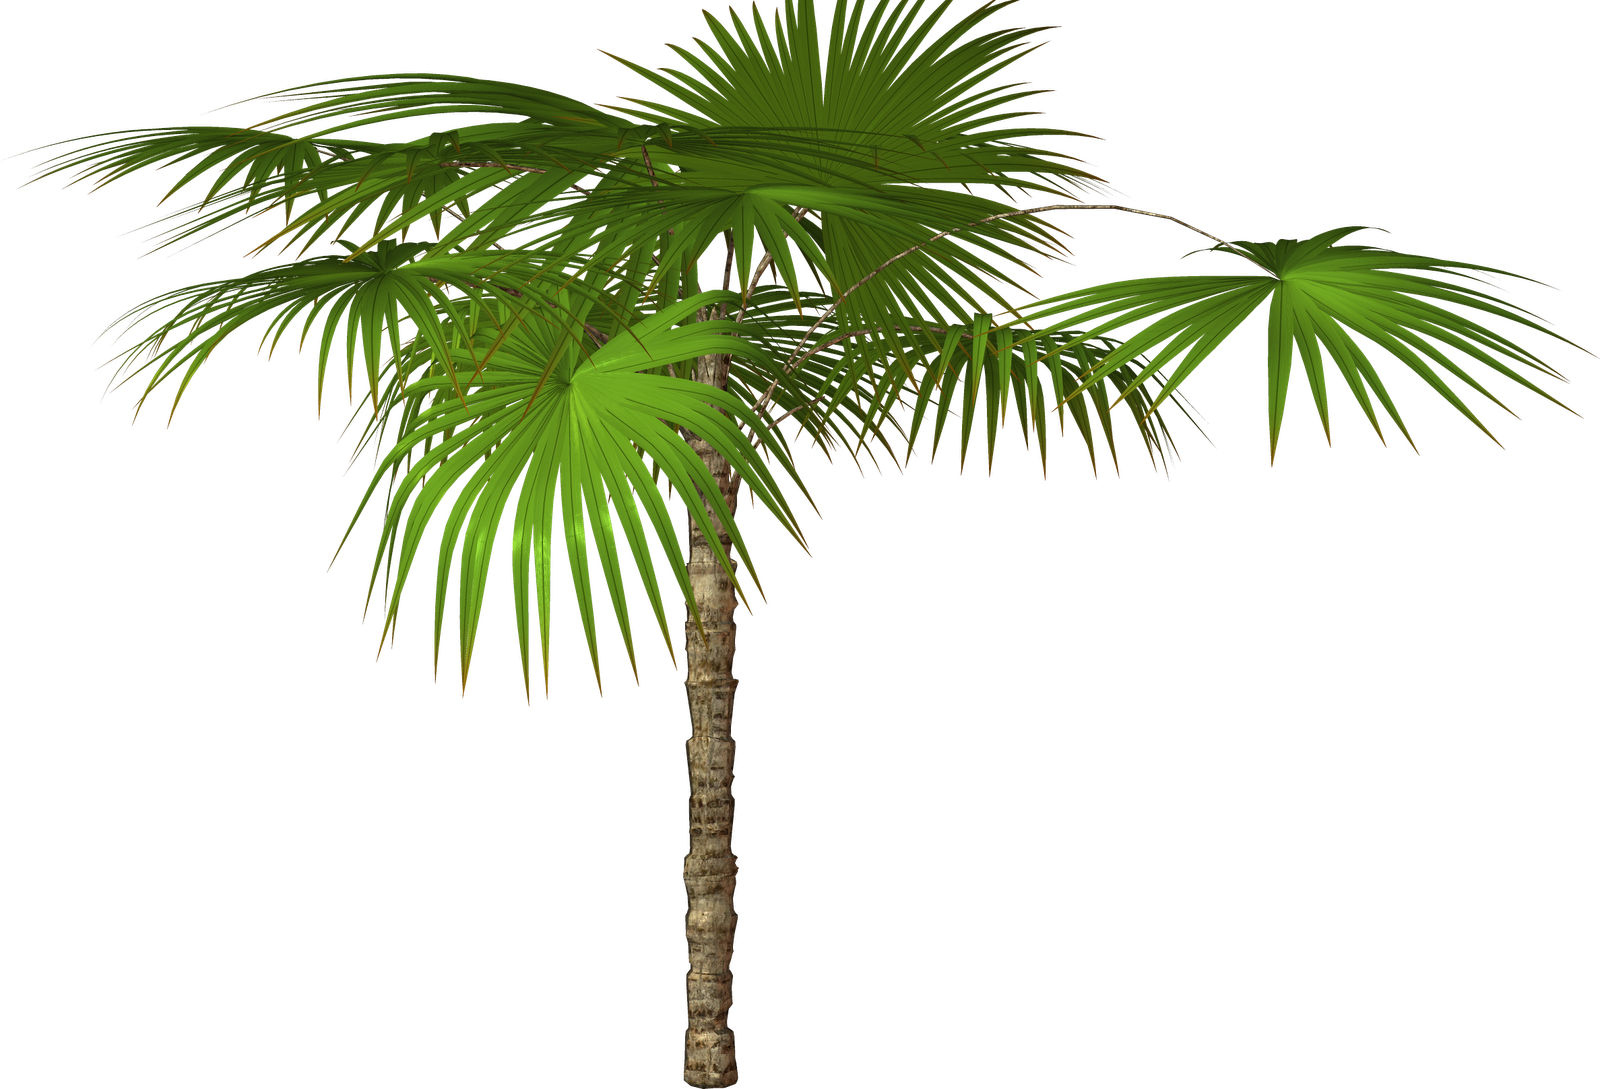 Tree PNG Images Transparent Free Download.